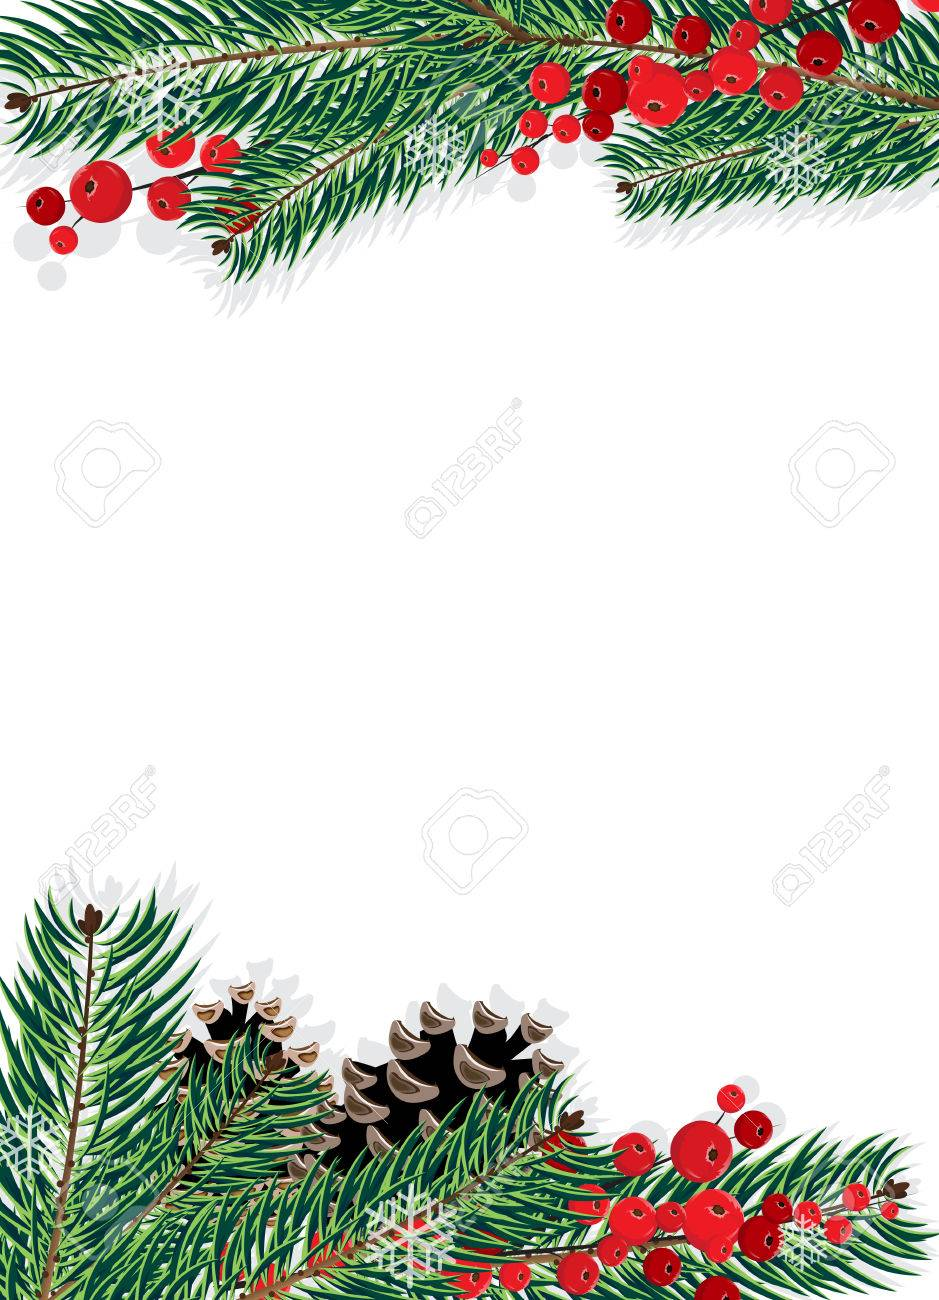 Spruce branches with cones and red berries on a white background - 23768681